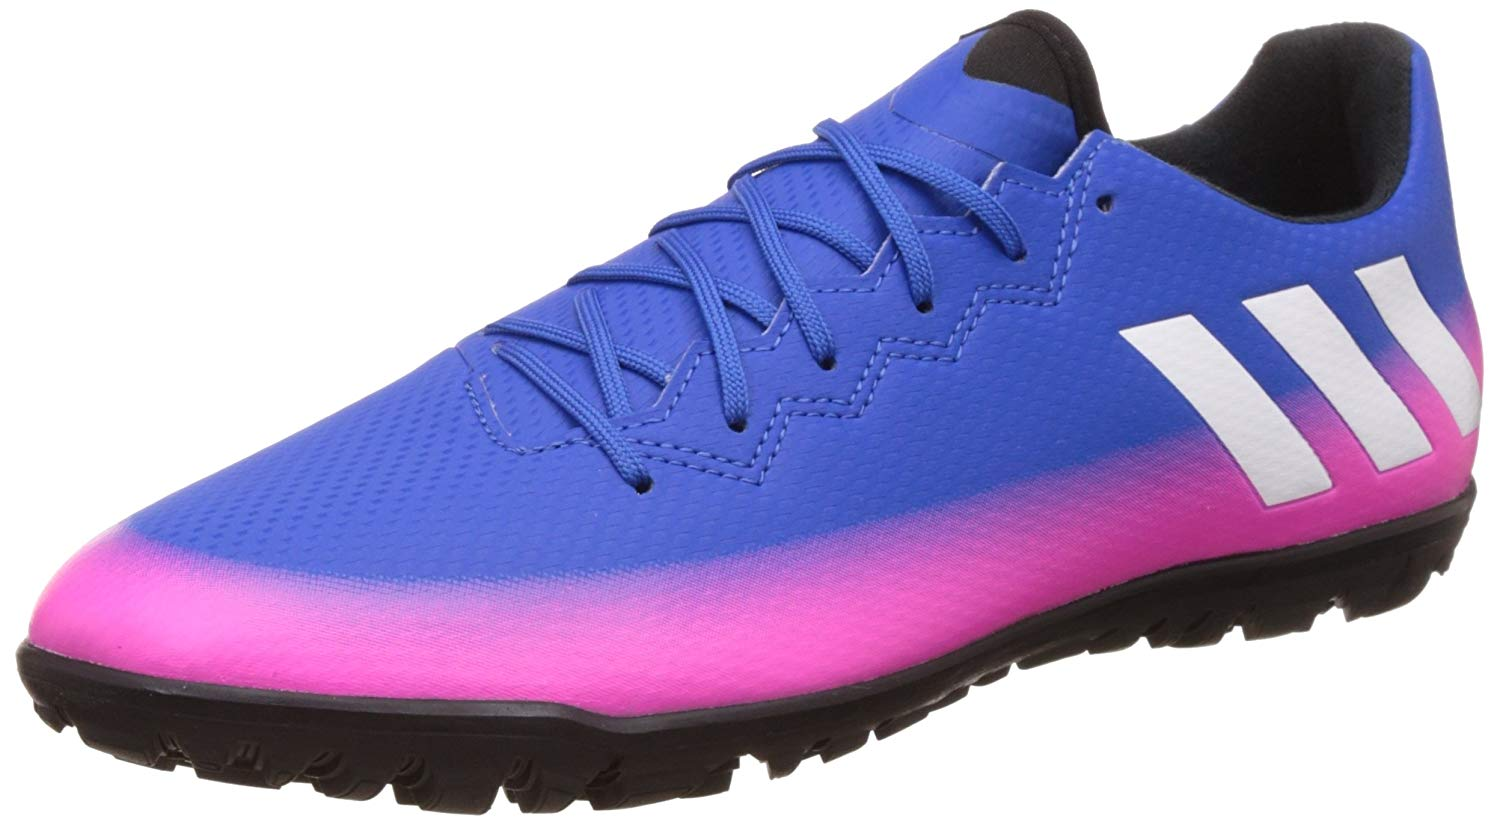 1363e5487bb2 Get Quotations · adidas Messi 16.3 TF Mens Astro Turf Soccer Sneakers/Boots